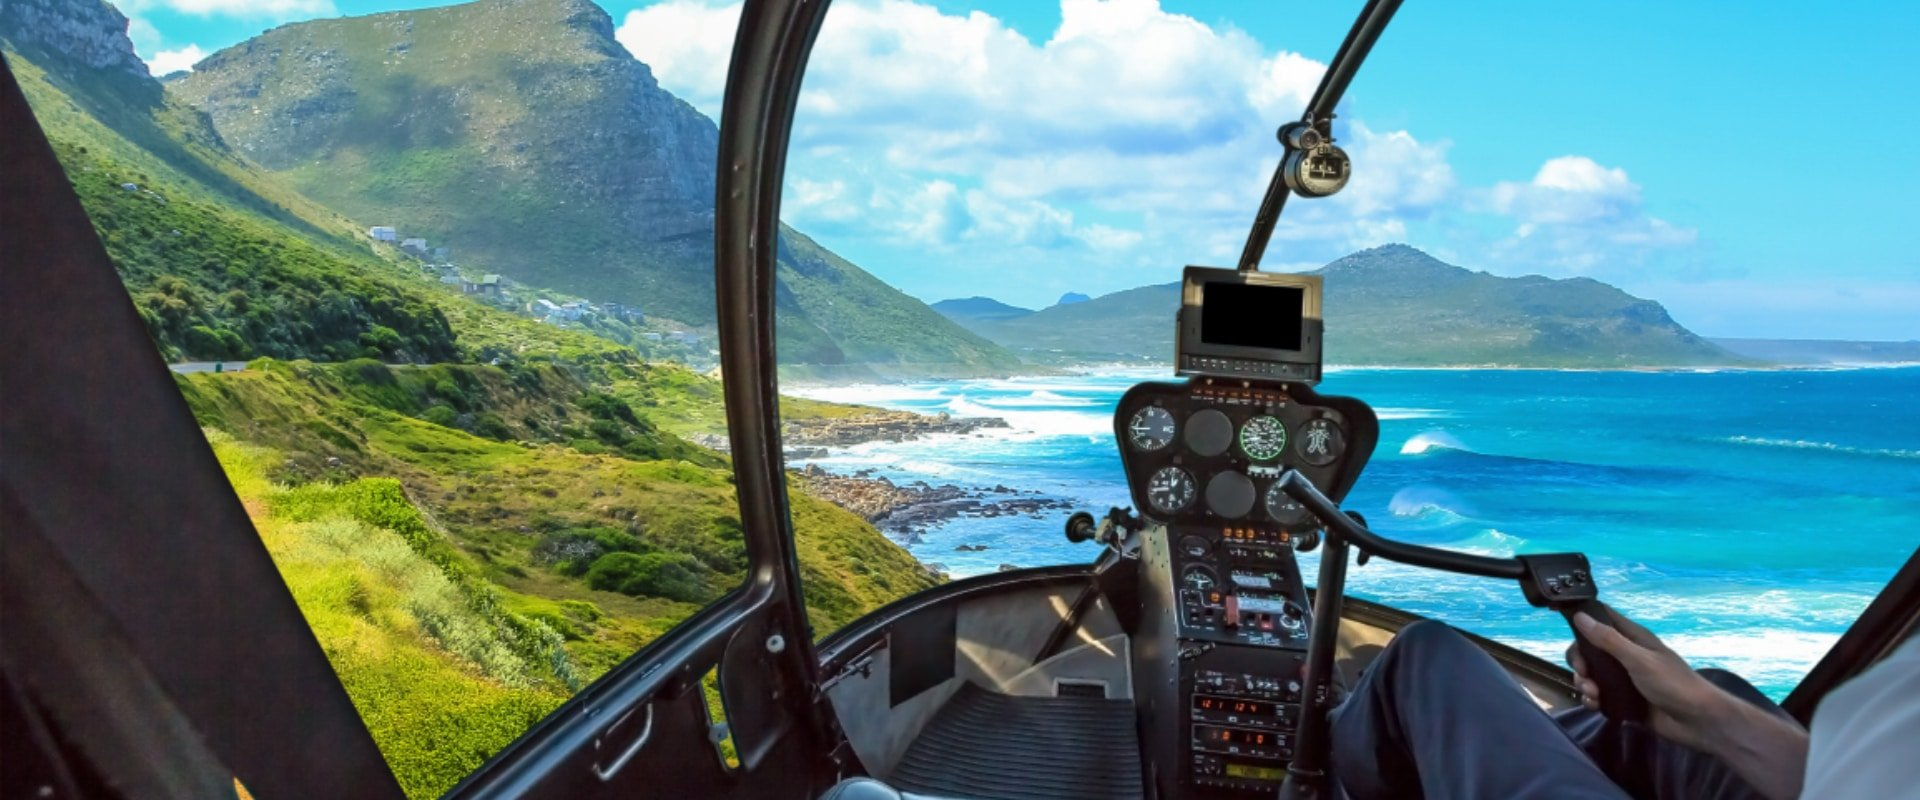 Hop on a helicopter flight for great views of the area